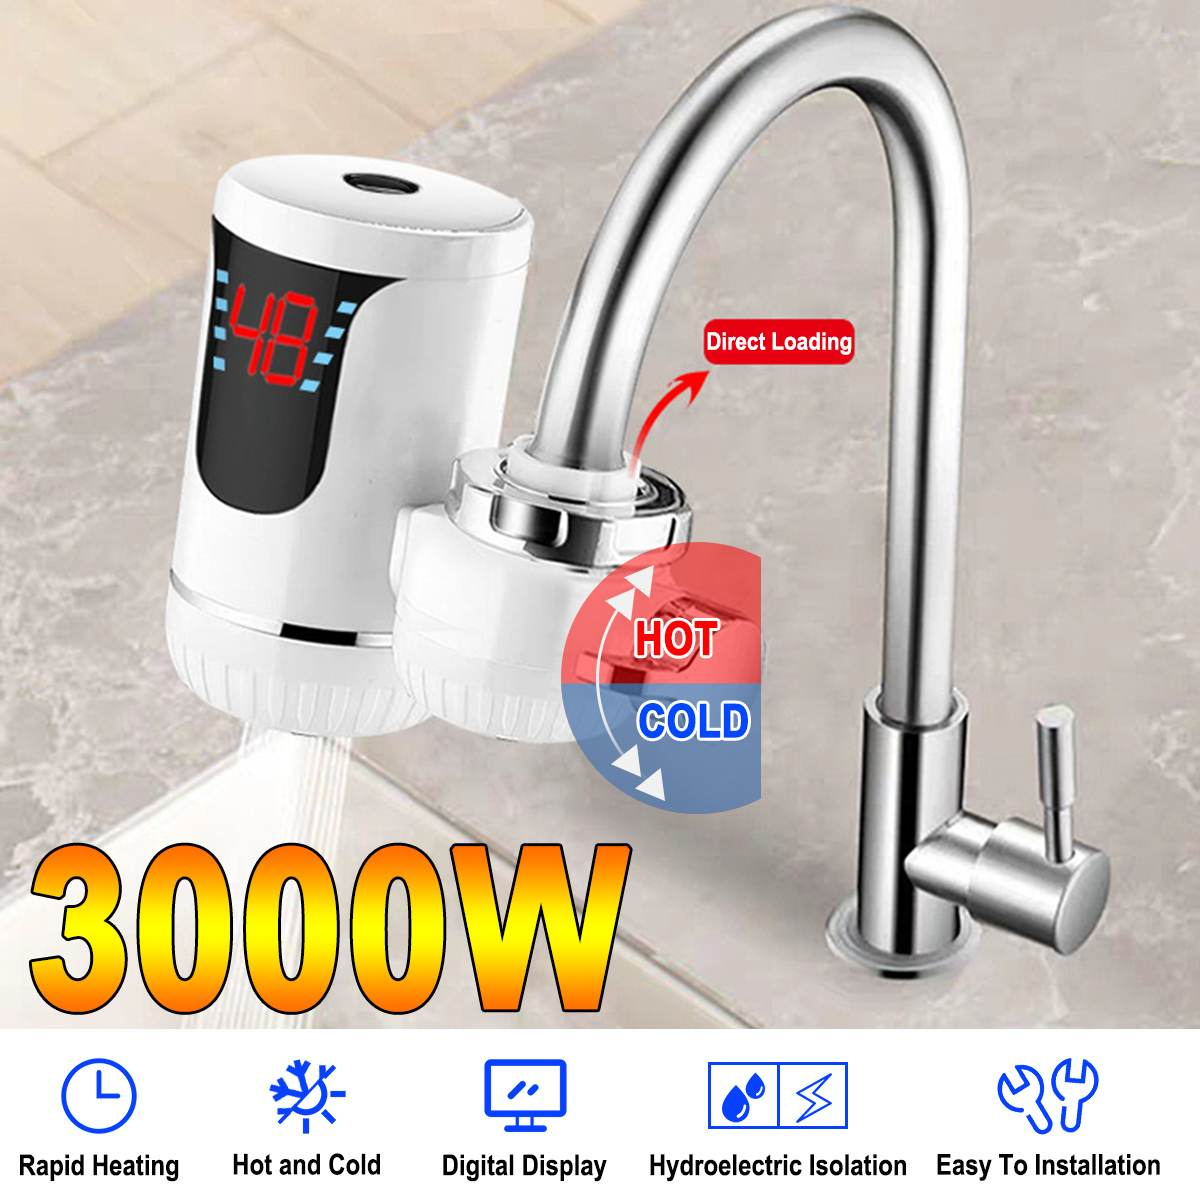 3000W Electric Water Heaters LED Digital Display Kitchen Faucet Tankless Heating Kitchen Tap EU Plug Household 220V